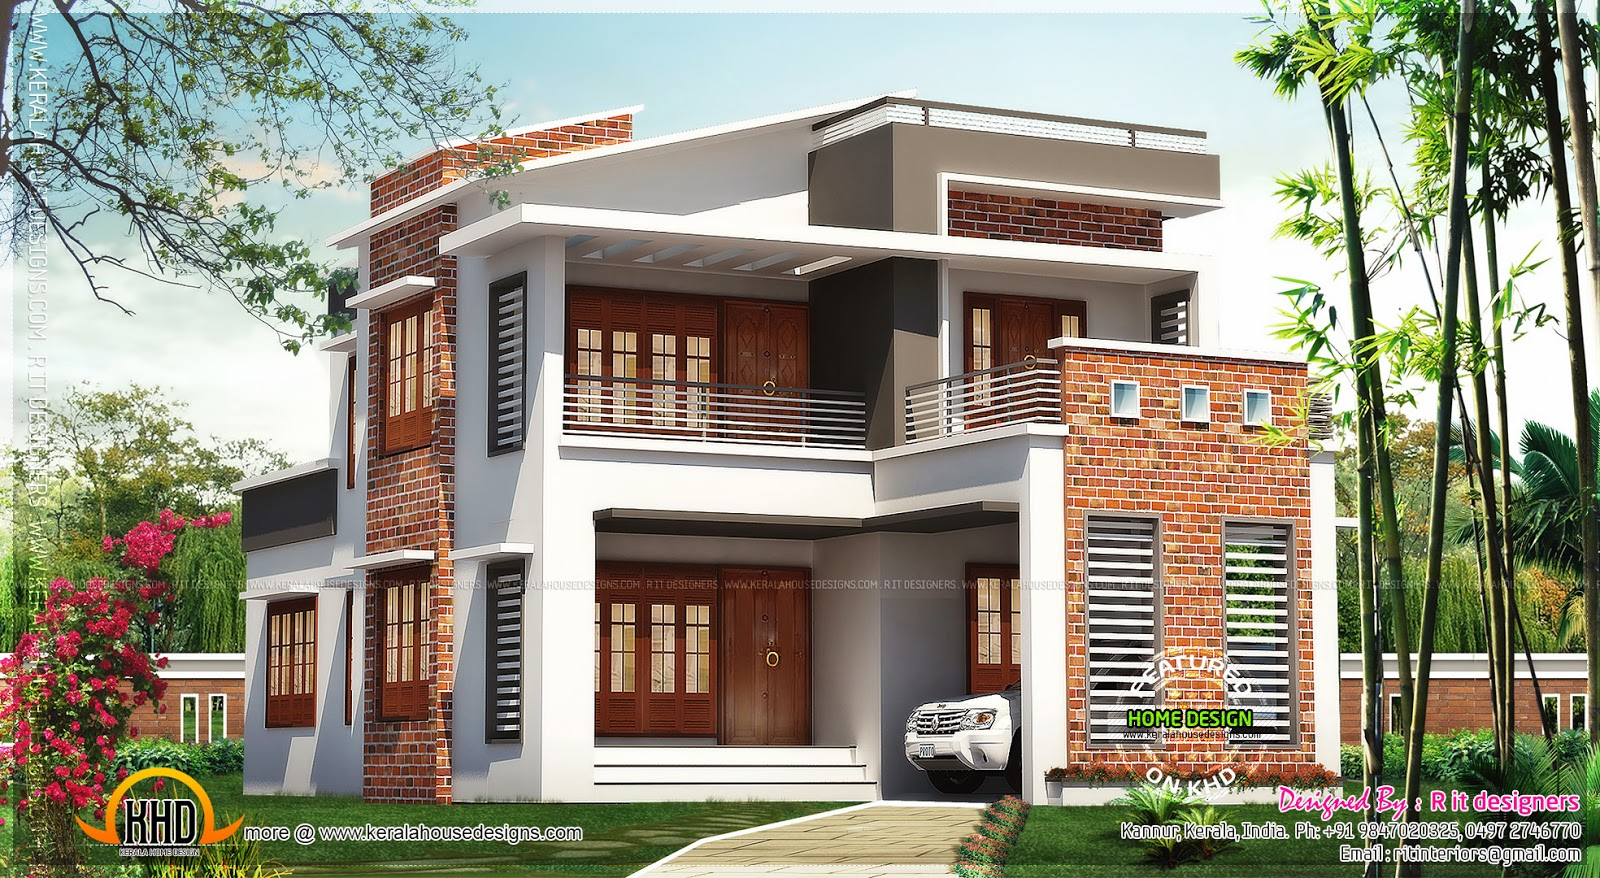 Brick mix house exterior design kerala home design and for Building front design